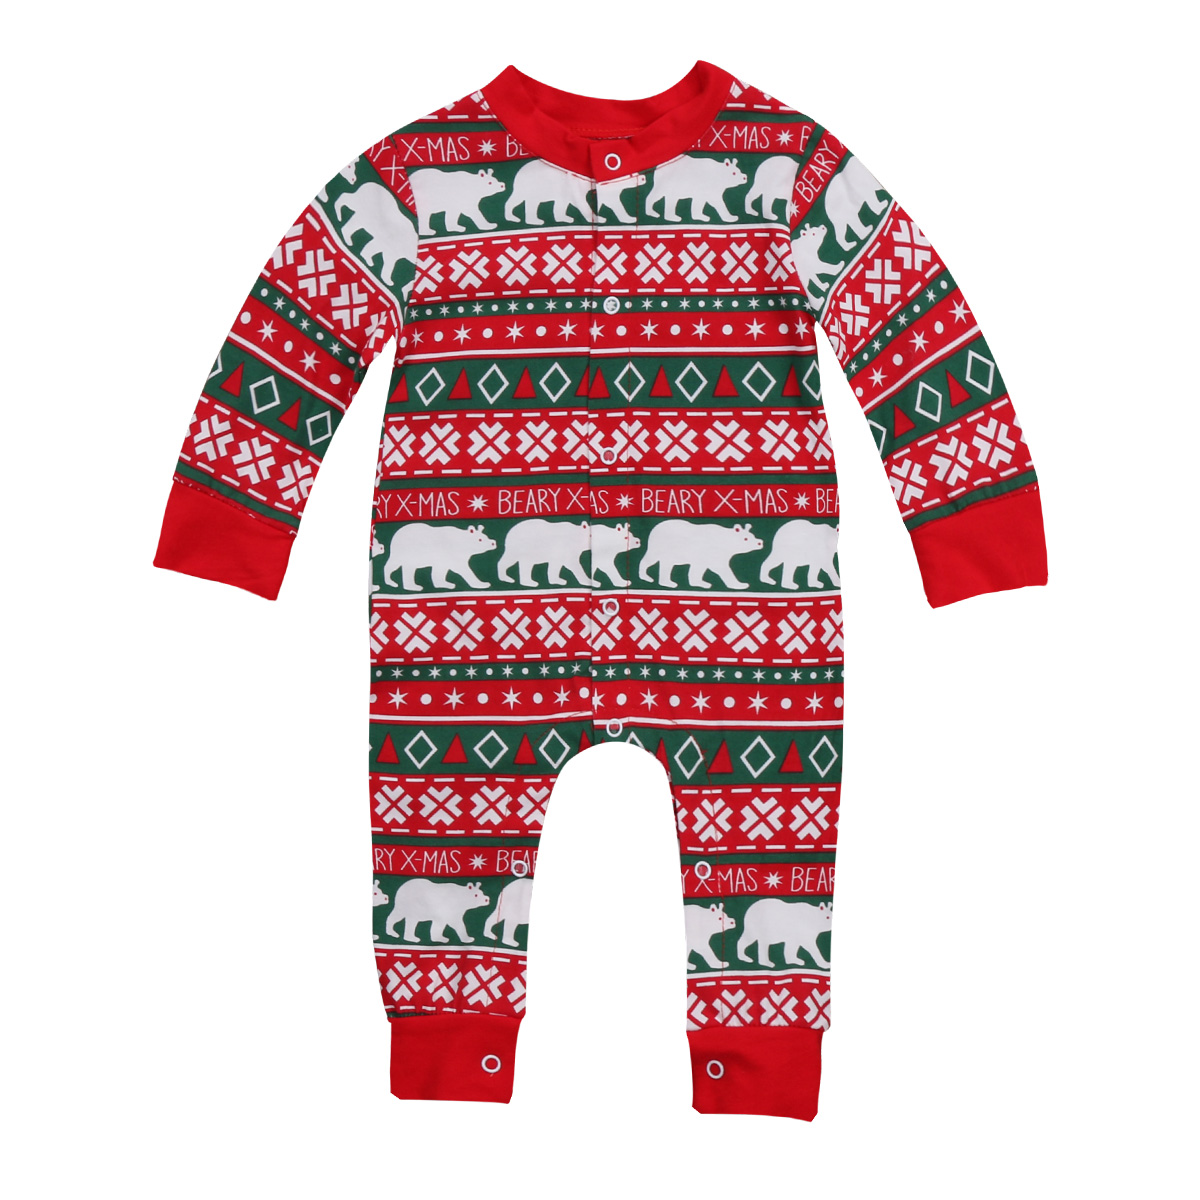 Newborn Baby Boy Girl Clothing Xmas Romper Jumpsuit Long Sleeve Cotton Cute Infant Winter Clothes Baby Girls Outfit baby clothing summer infant newborn baby romper short sleeve girl boys jumpsuit new born baby clothes